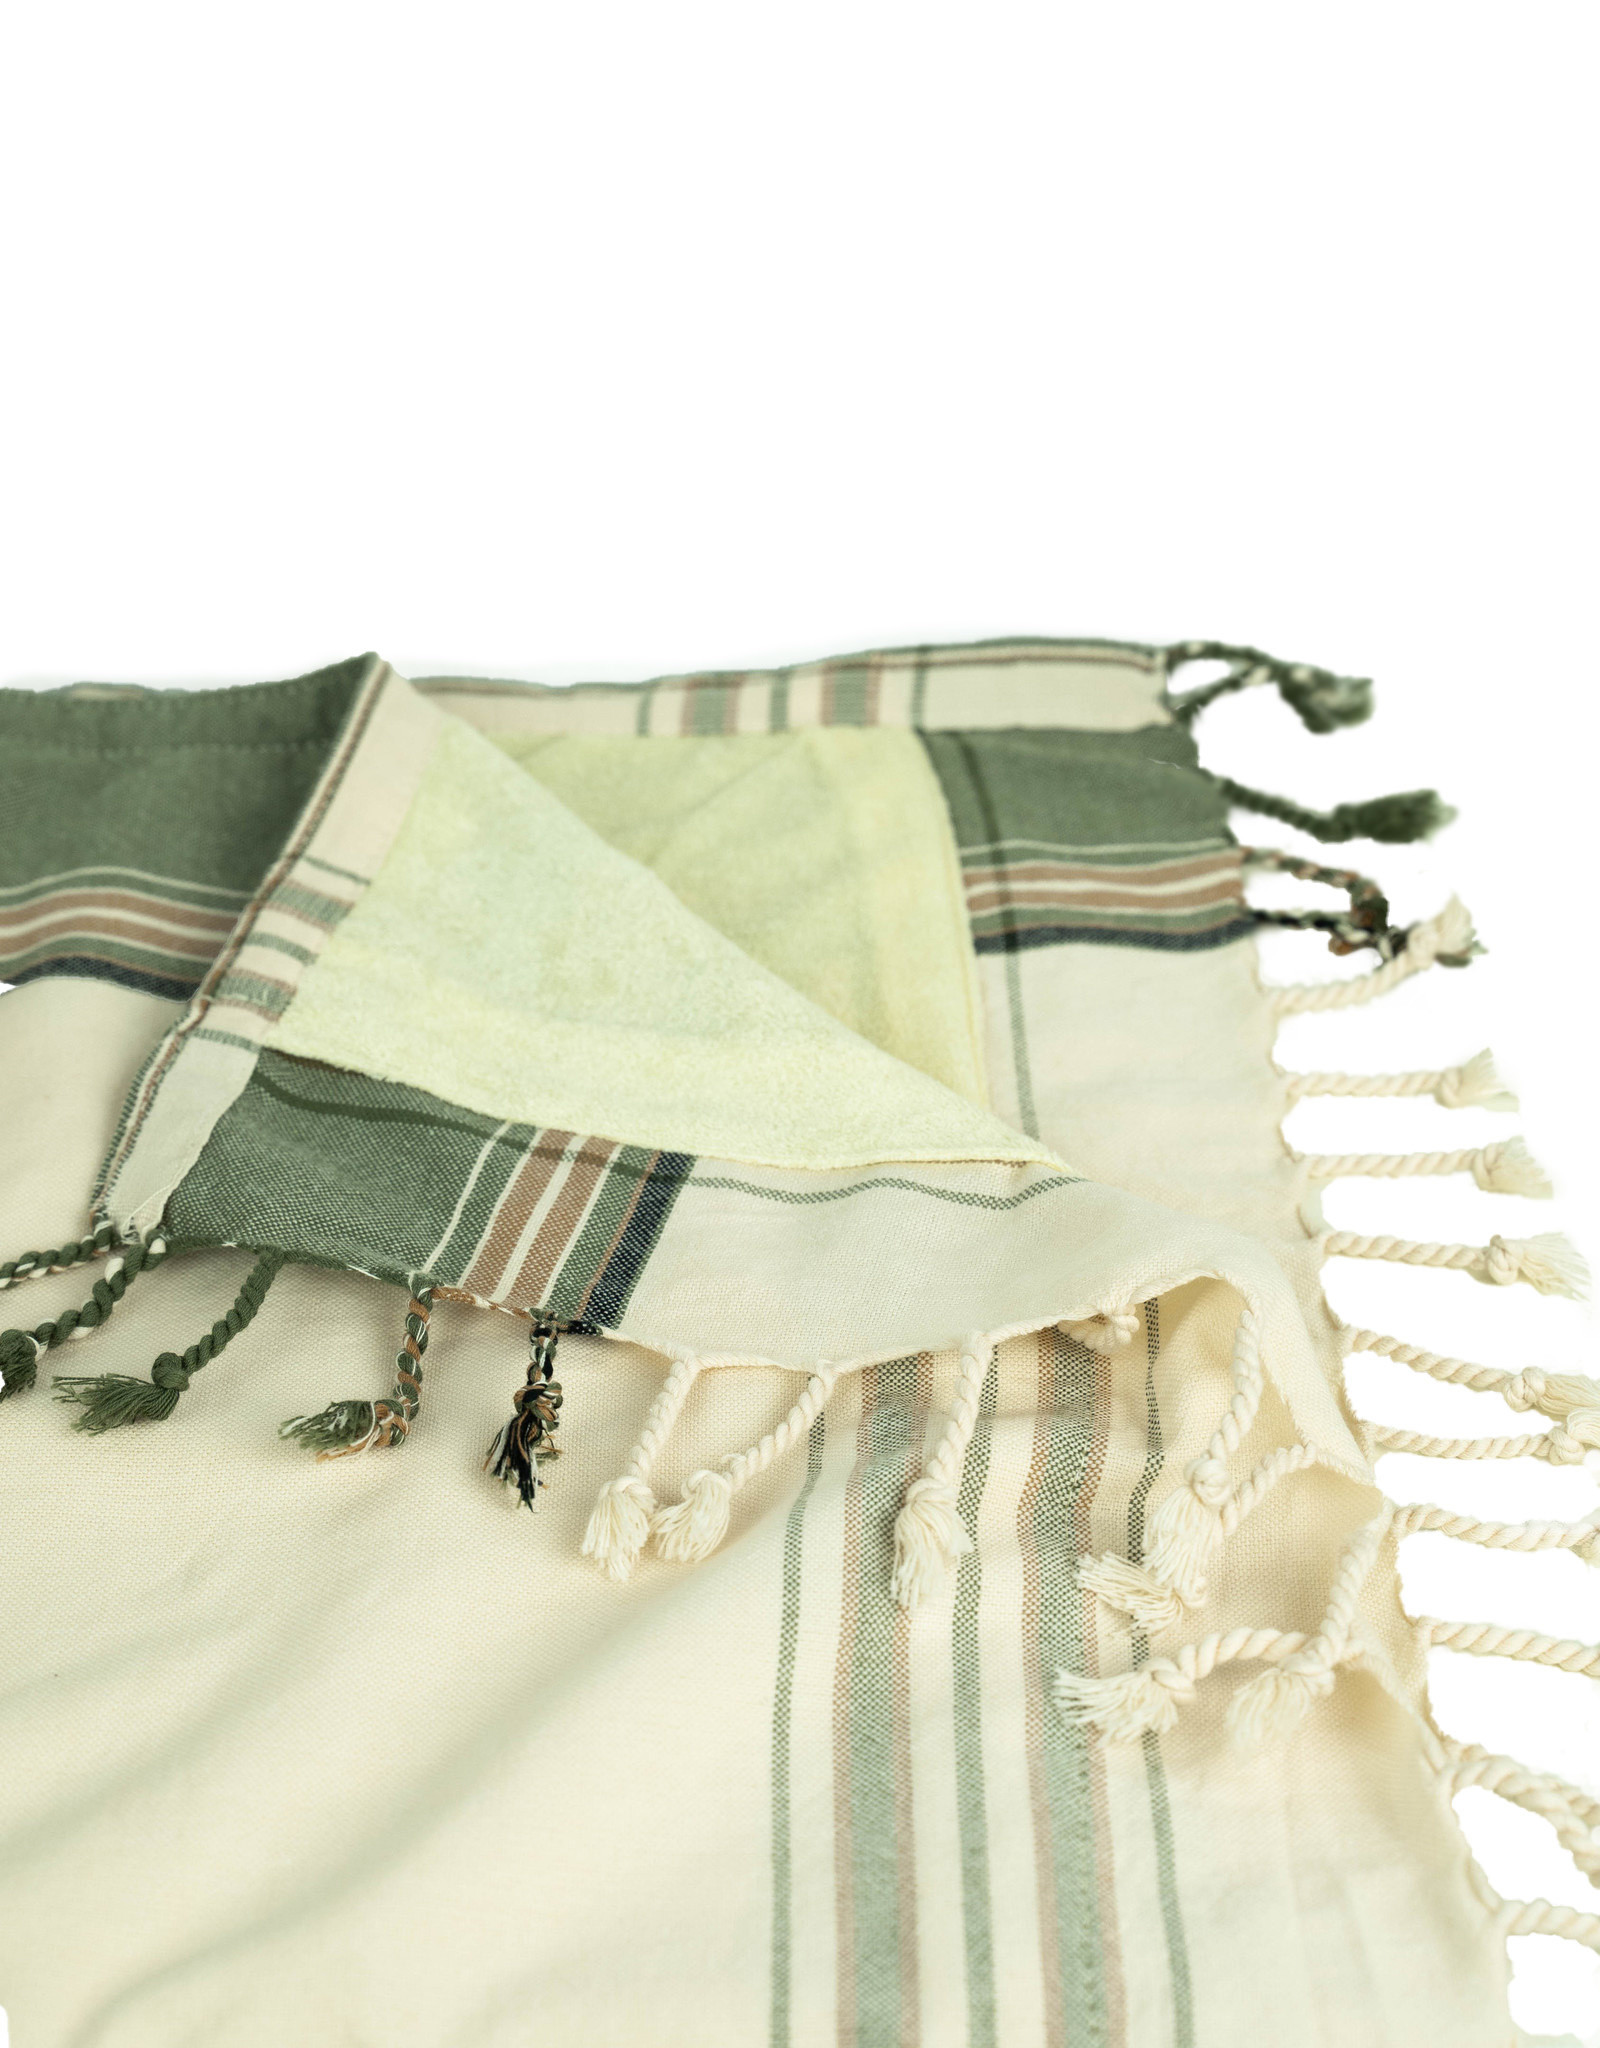 Maisha.Style Kikoy towel - stripey natural colors with beige towel lining